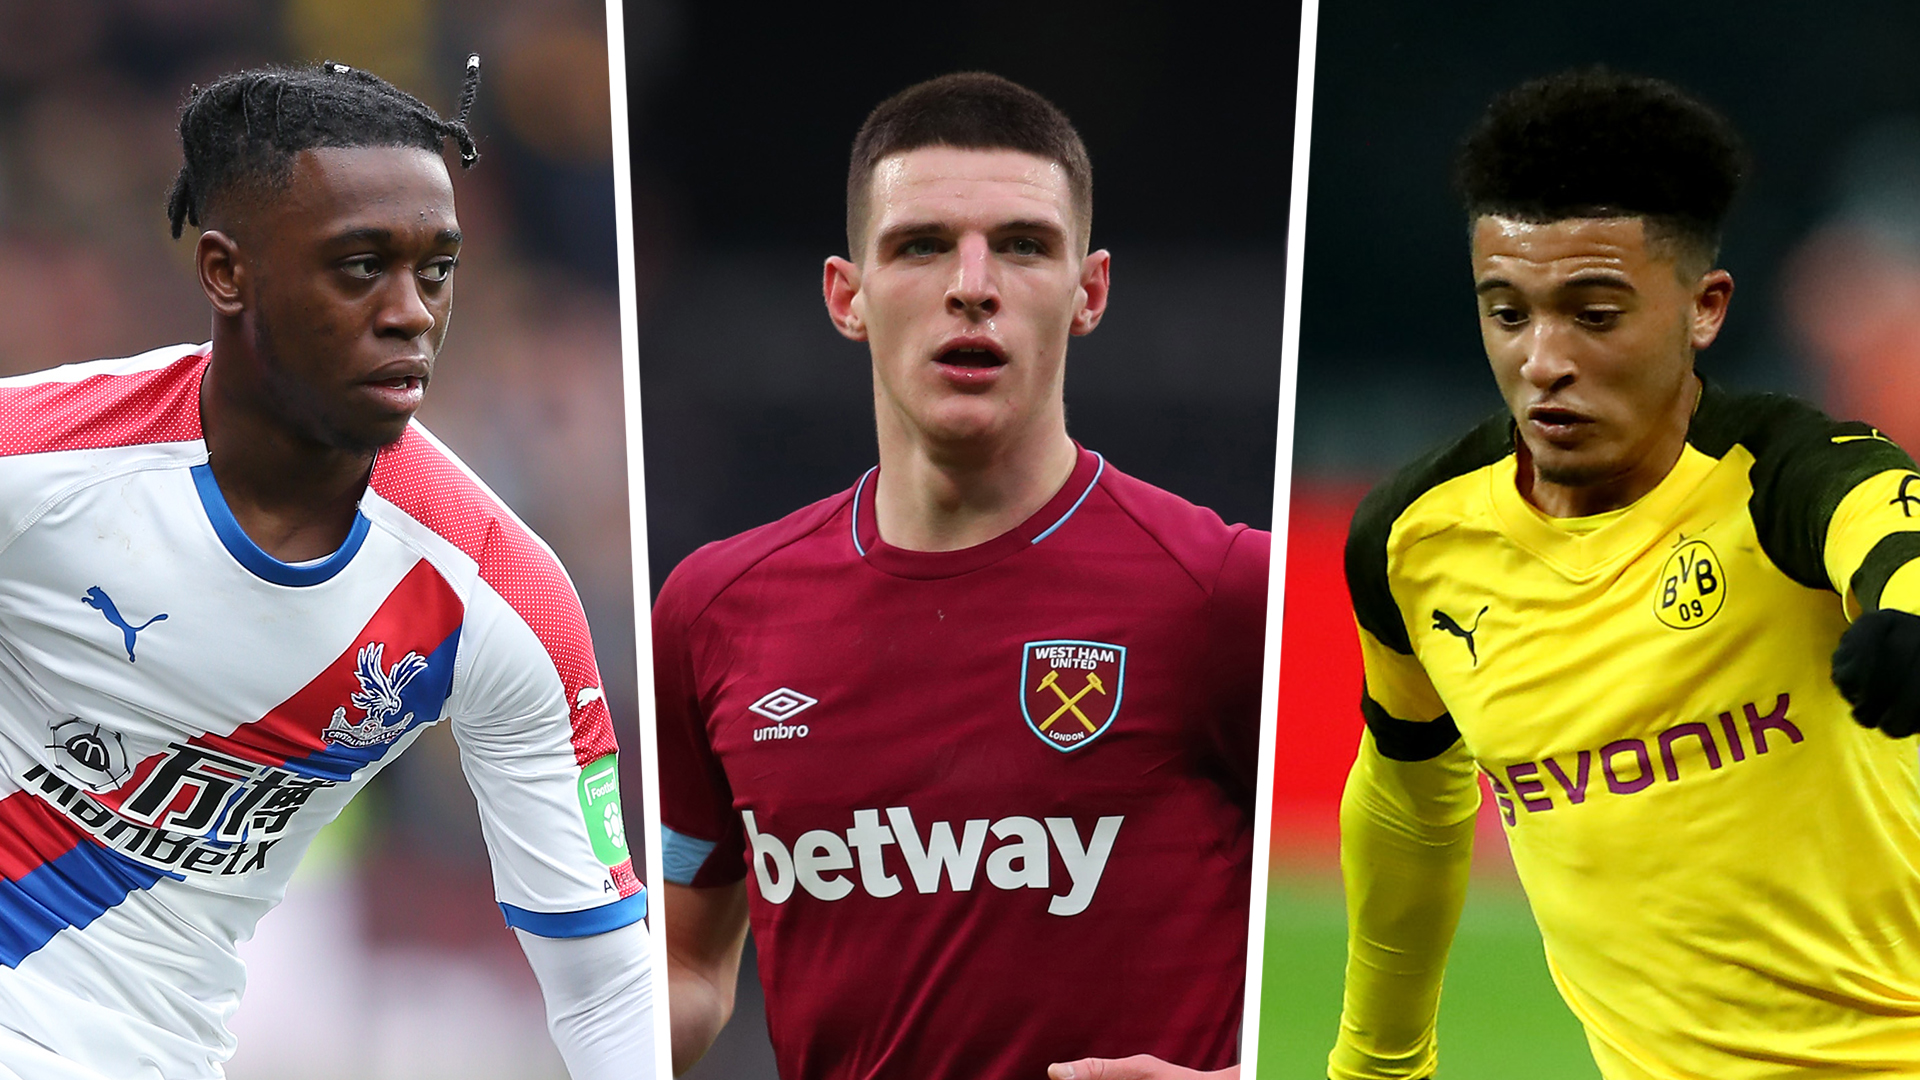 West Ham's Declan Rice big-club move a 'matter of price' - Pellegrini